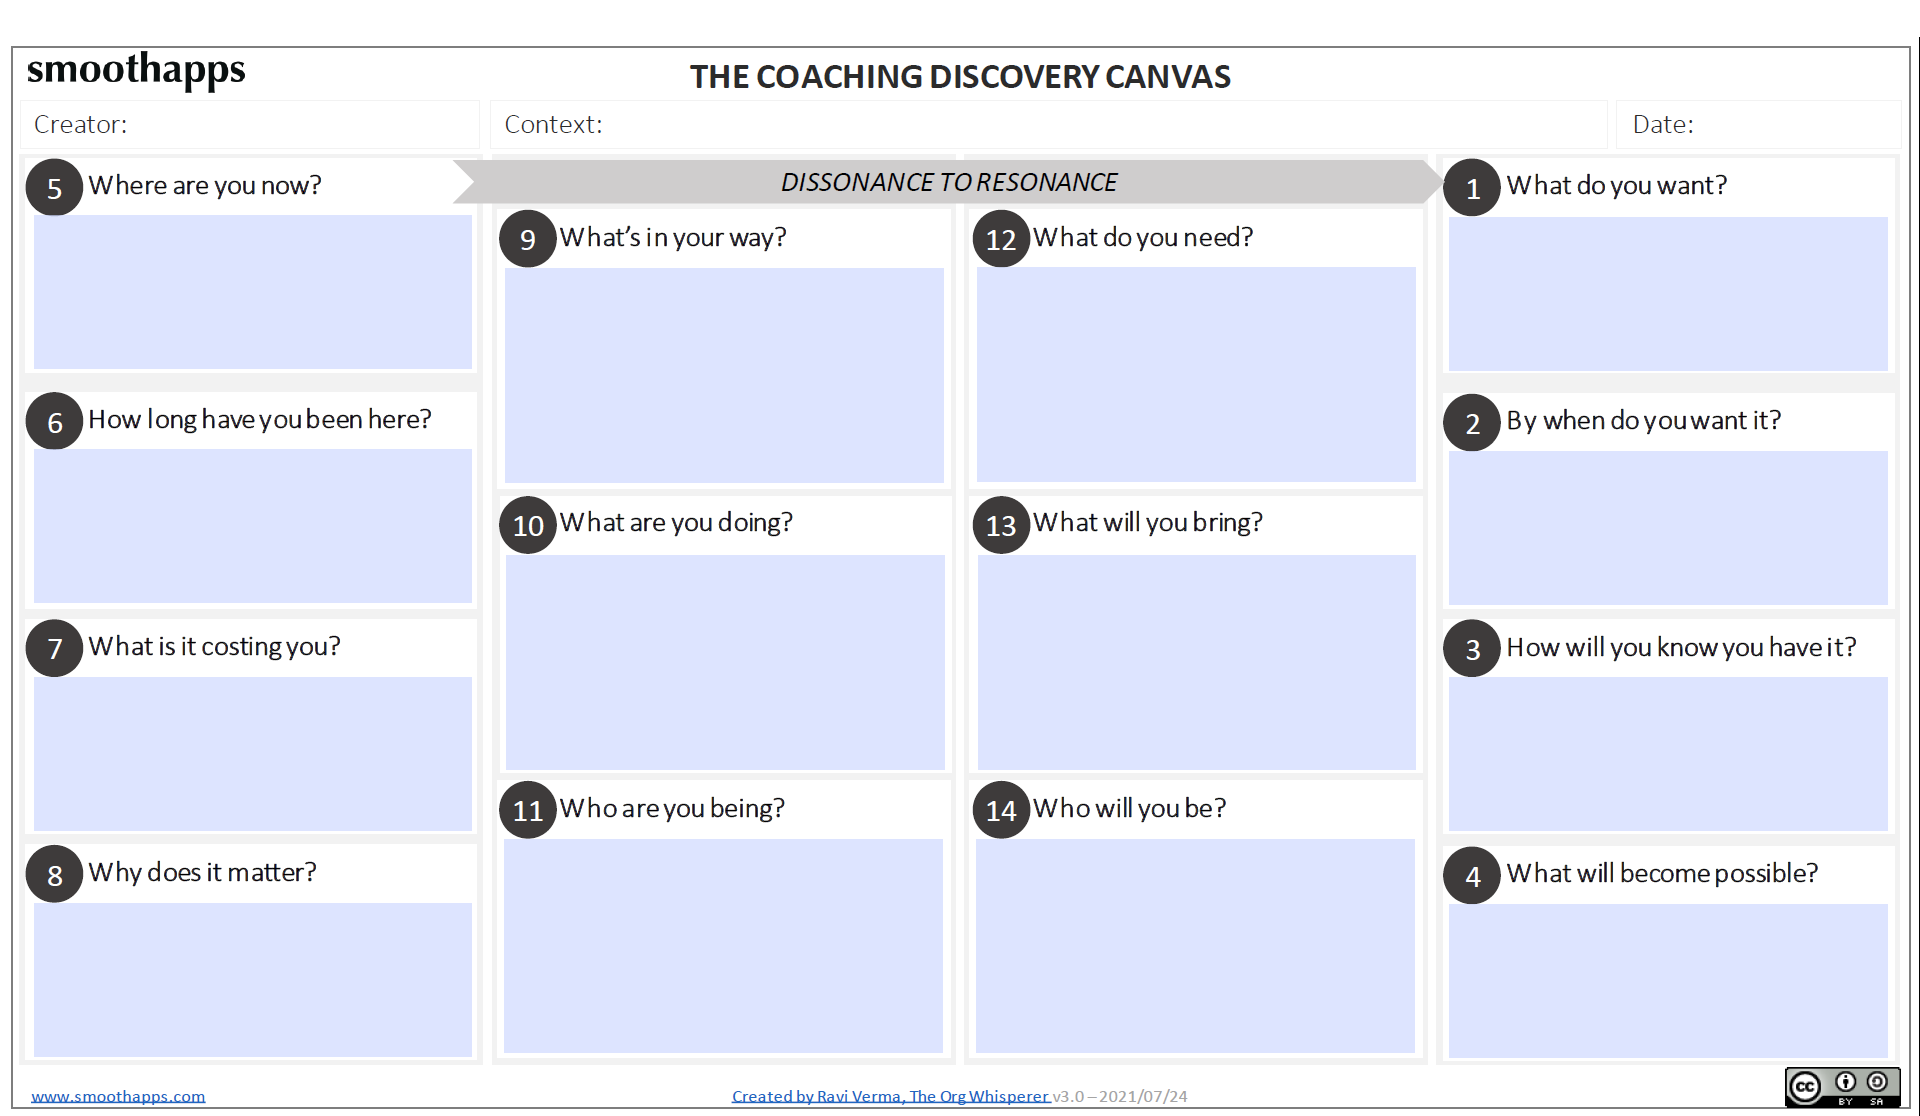 The Coaching Discovery Canvas, v3.0